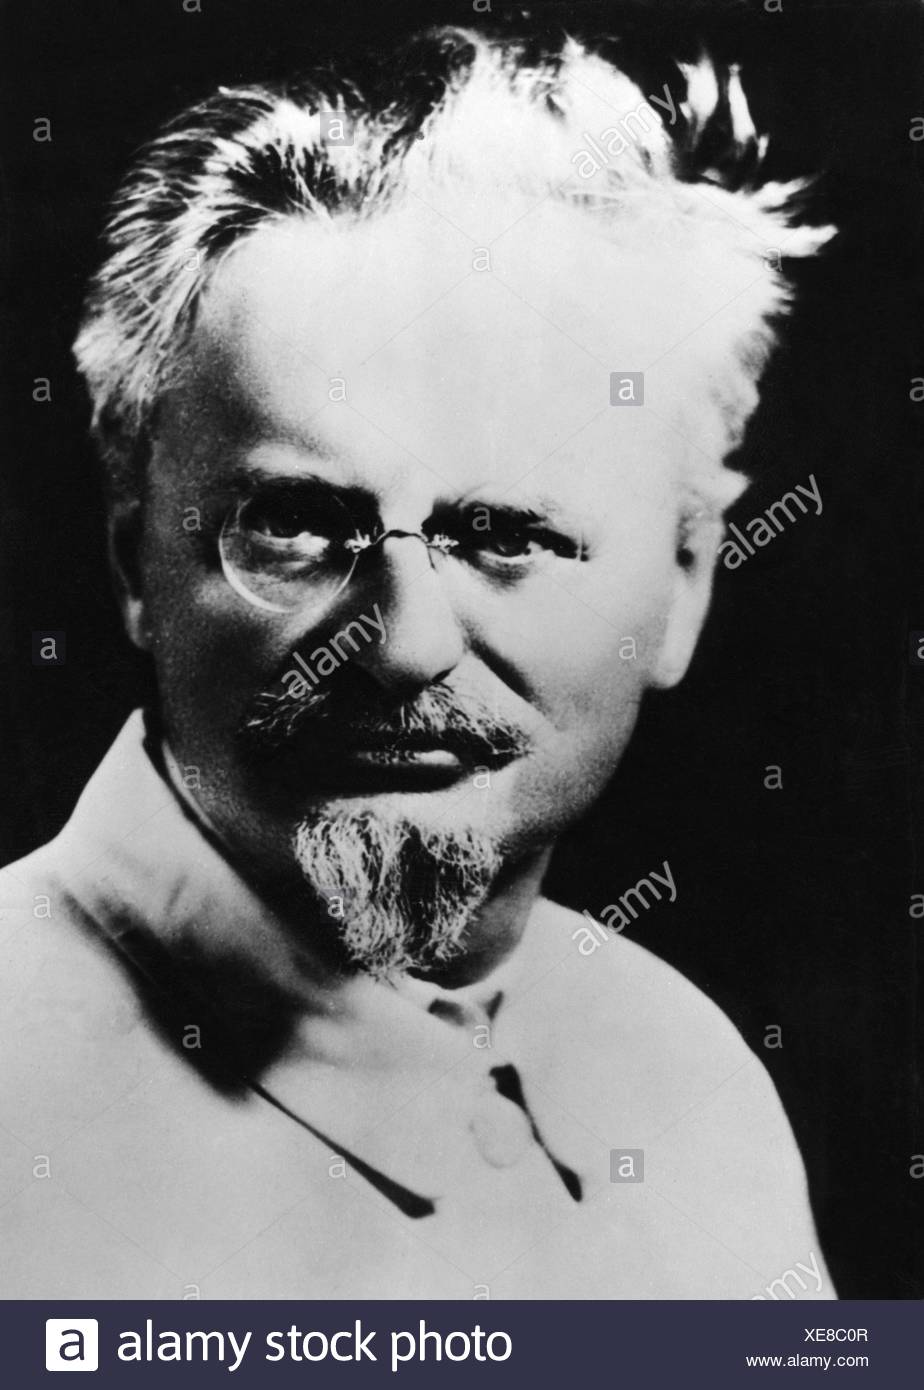 Trotsky, Leon, 7.11.1879 - 28.8.1940, Soviet politician, portrait, 1930s, Additional-Rights-Clearances-NA - Stock Image